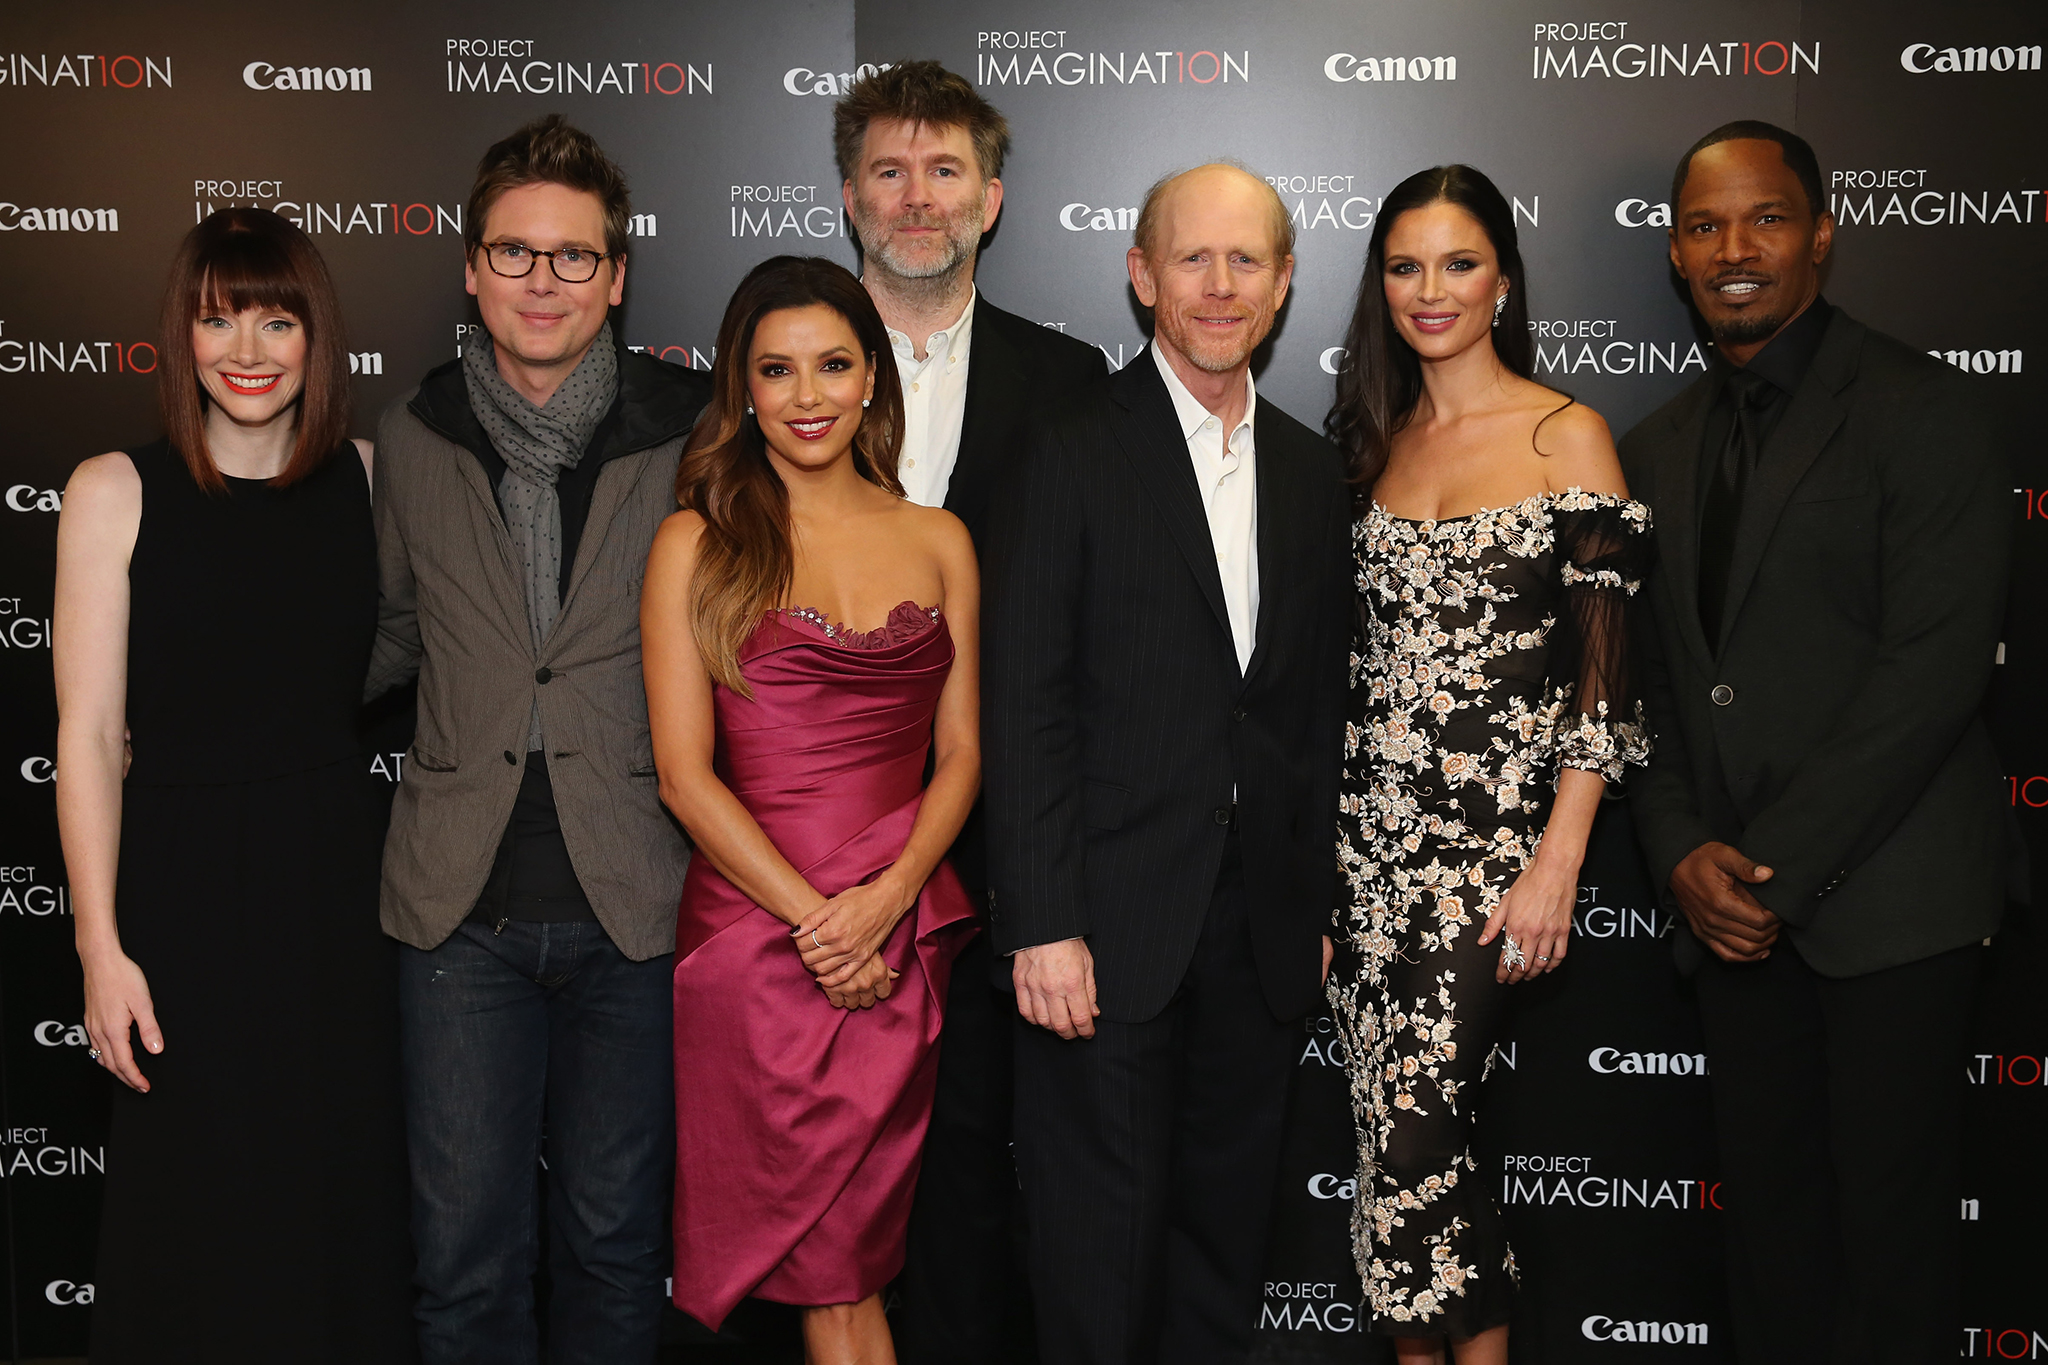 Bryce Dallas Howard, Biz Stone, Eva Longoria, James Murphy, Ron Howard, Georgina Chapman, and Jamie Foxx (Getty Images for Canon's Project Imaginat10n)